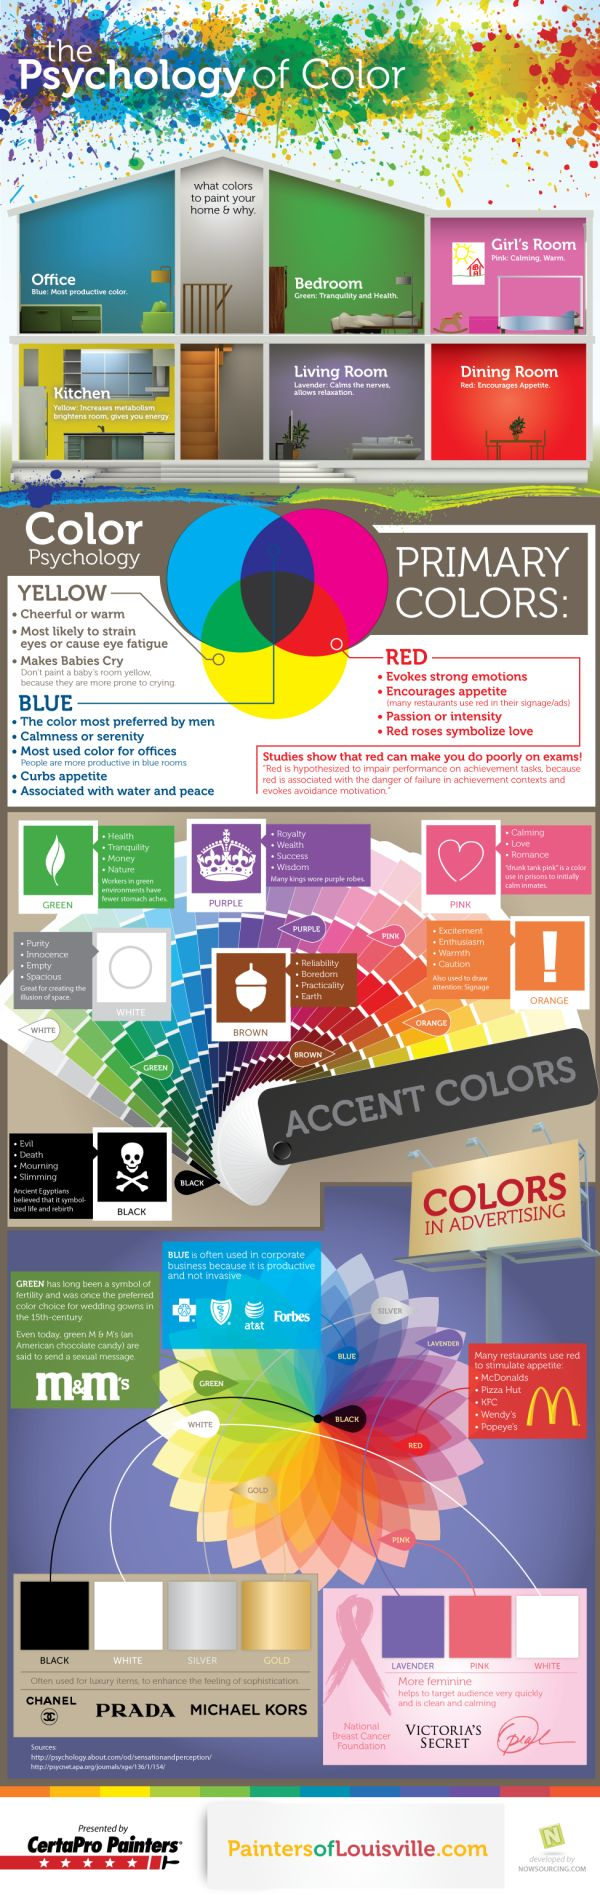 Psychology of Color: Colors Charts, Website, Web Site, Psychology Of Colors, Paintings Colors, Colors Psychology, Internet Site, Rooms Colors, Infographic